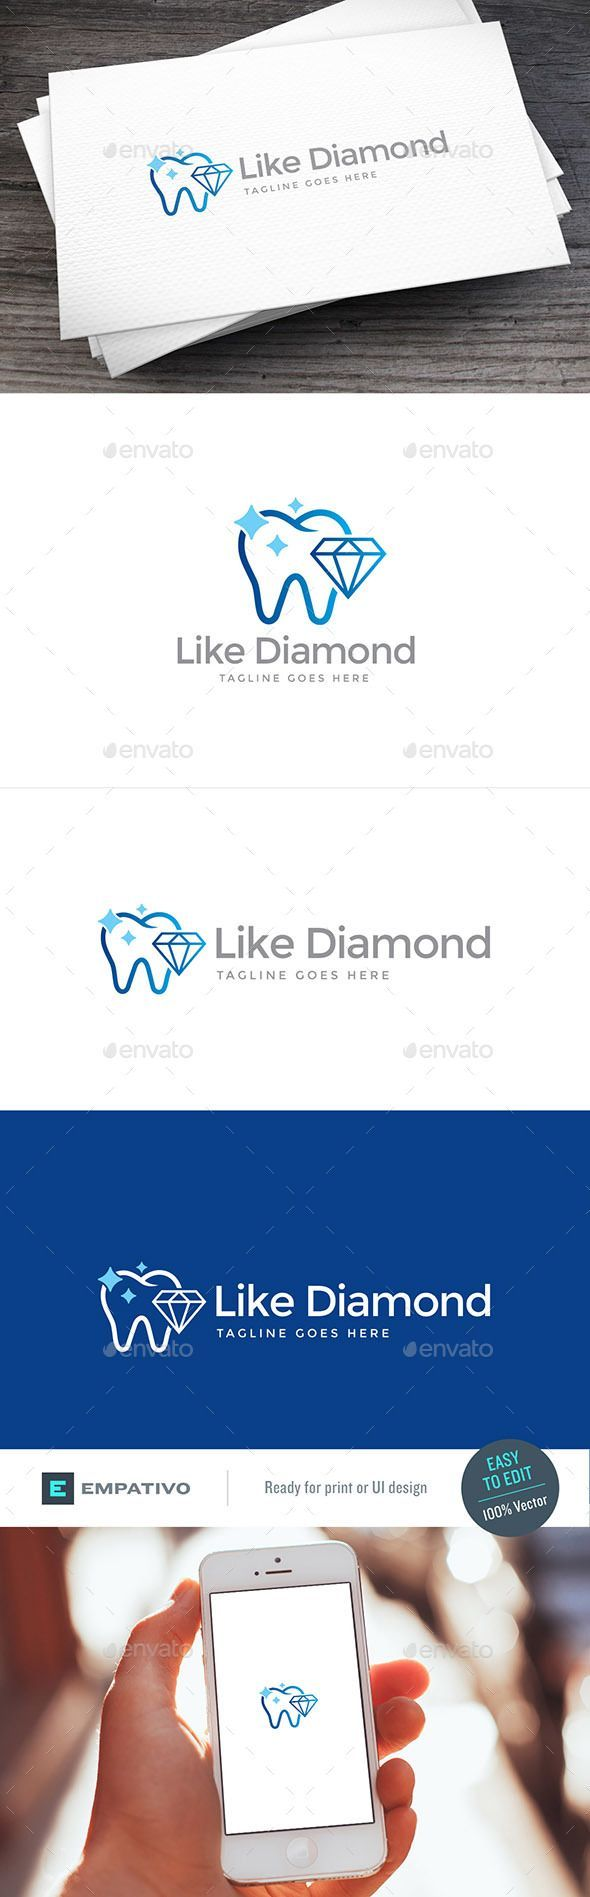 Modern, versatile and stylish logo template. Ideal for a